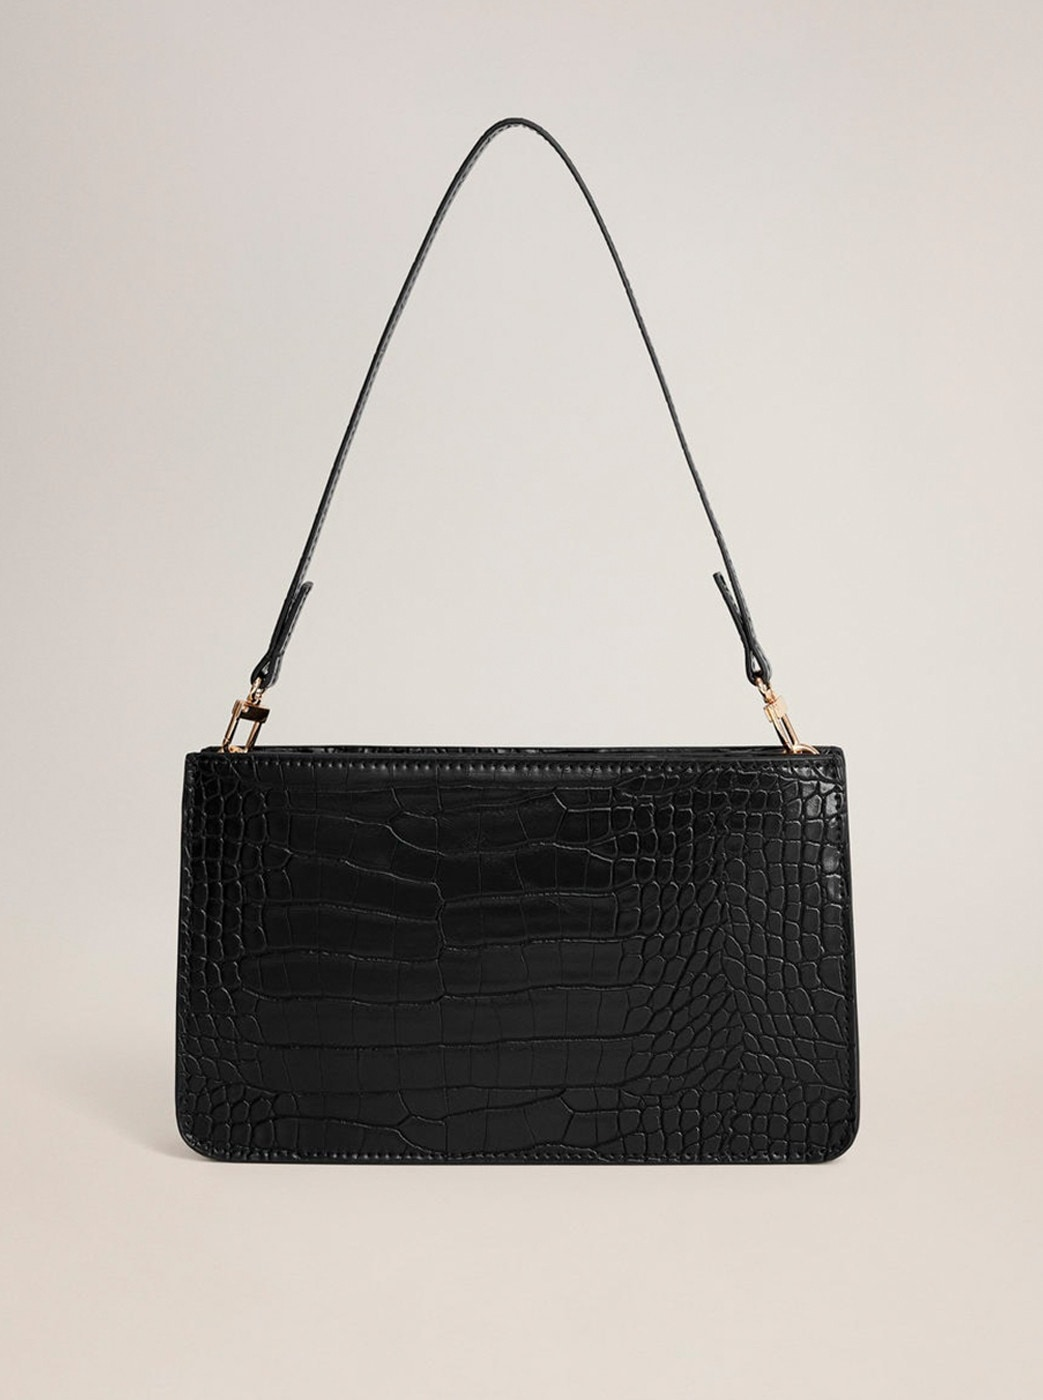 Black crossbody handbag with crocodile pattern Mango Mia